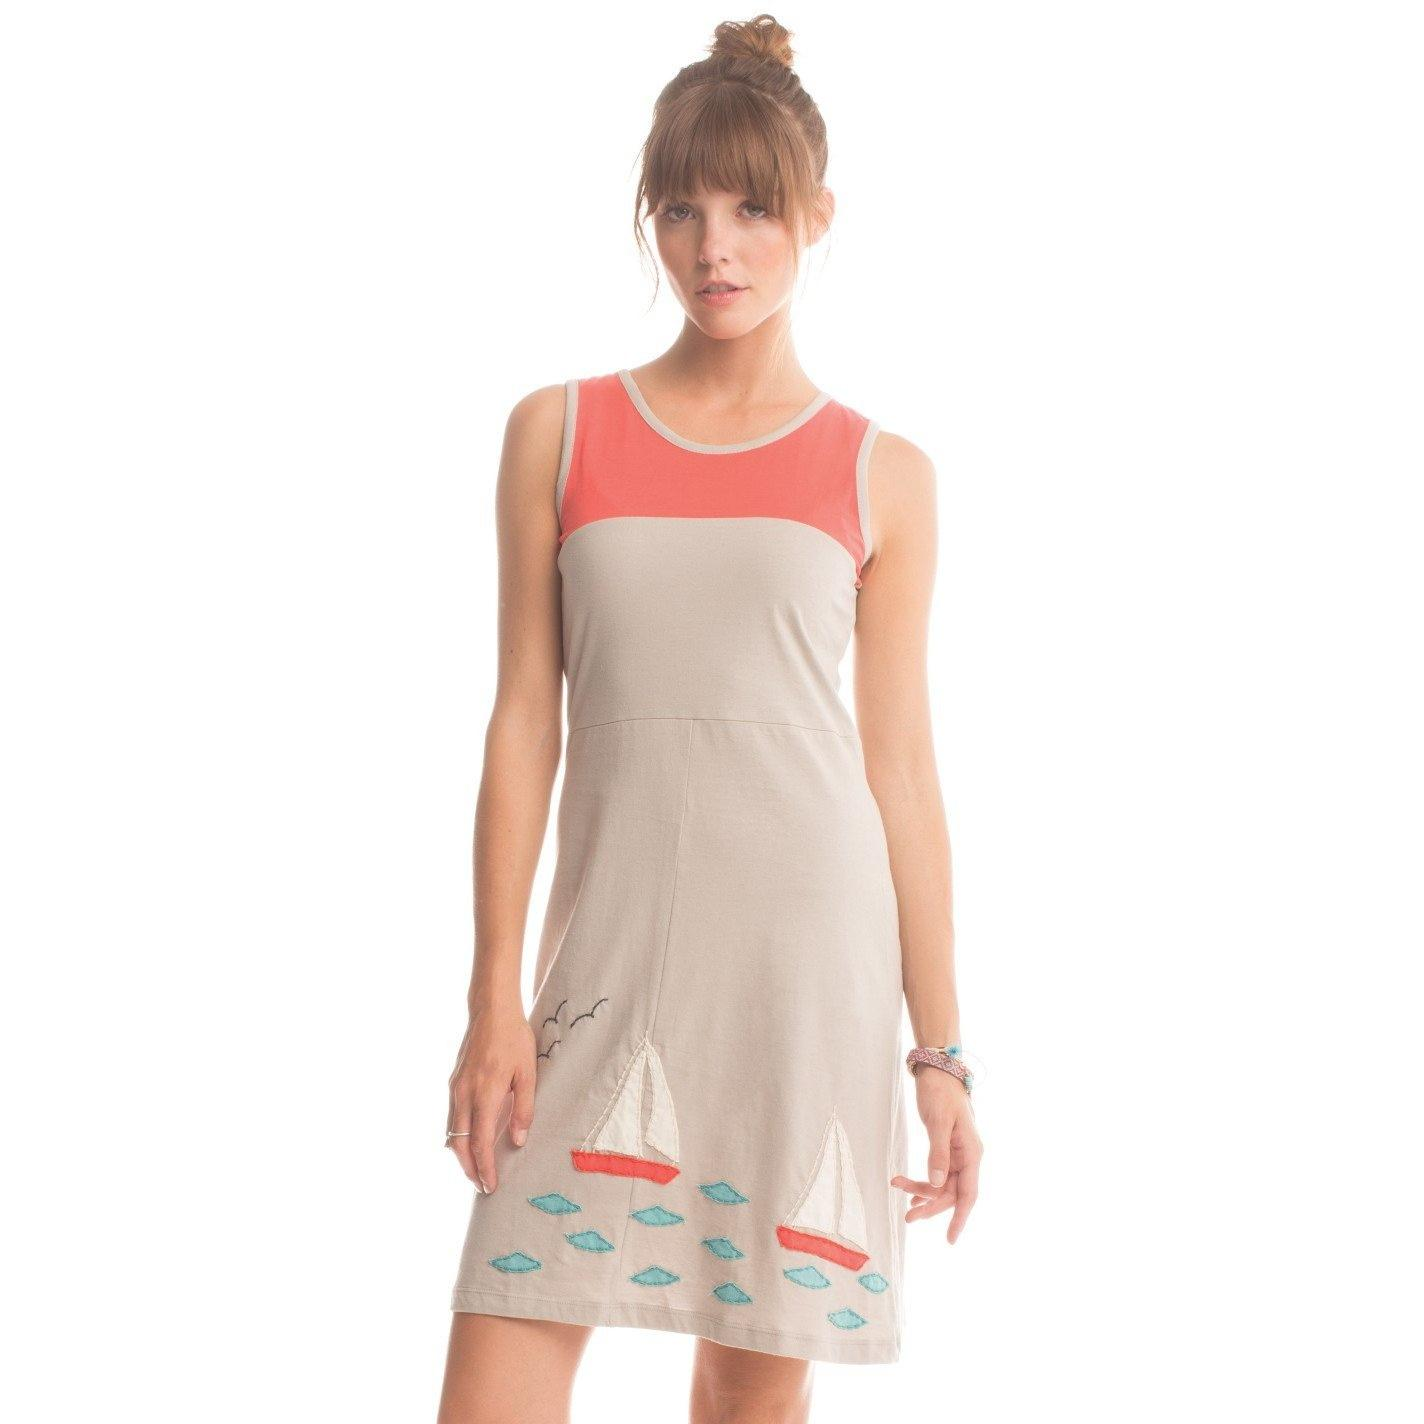 Synergy Organic Clothing Sailboat Applique Beatrice Dress - Robinsons Nest